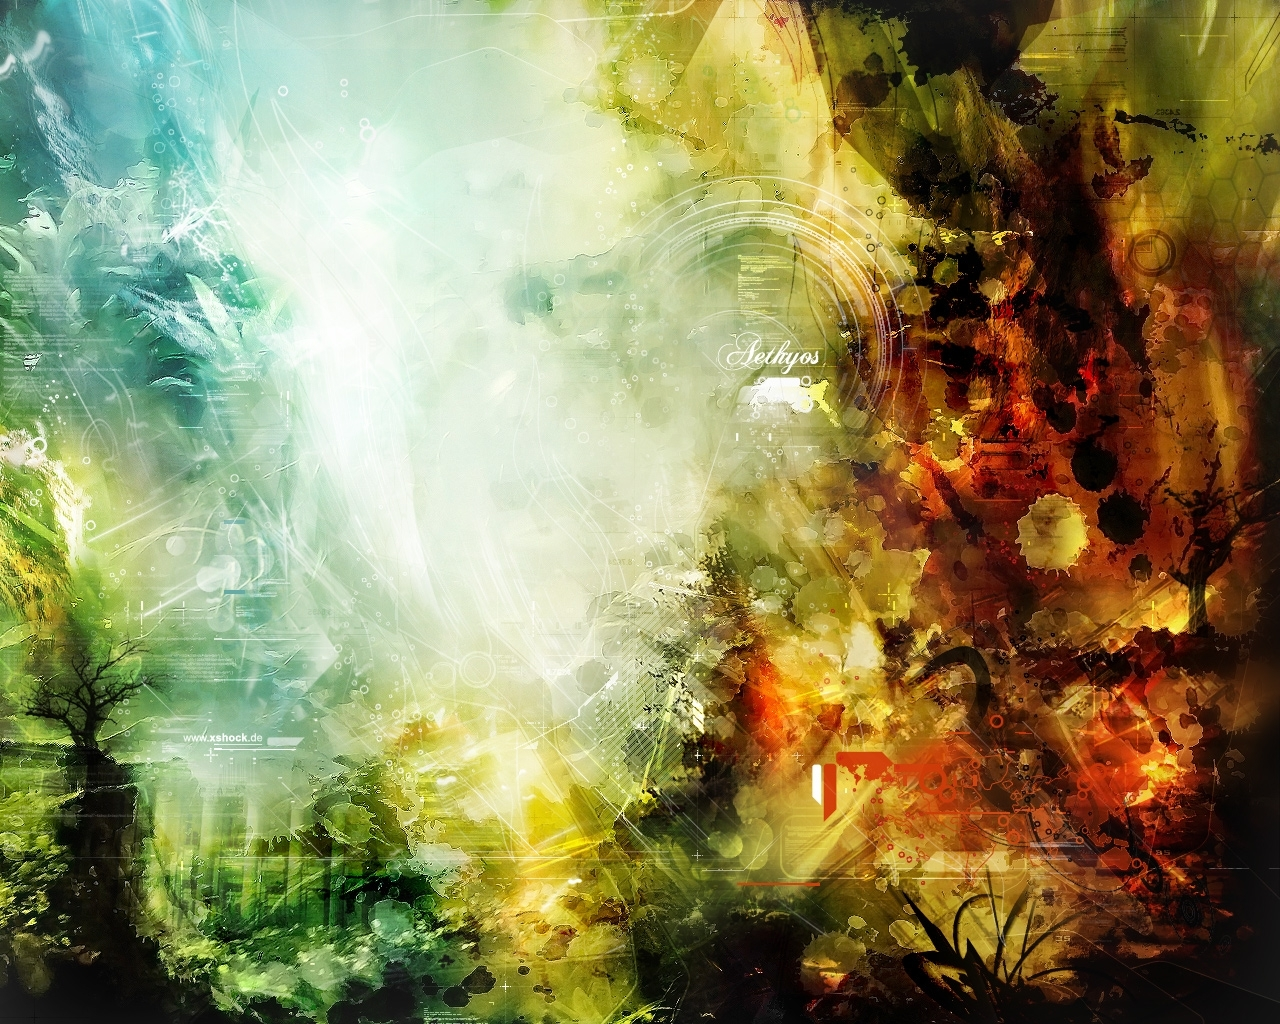 A Hazy Scenery | Abstract Wallpapers | Pinterest Inside Most Up To Date Abstract Nature Wall Art (View 20 of 20)